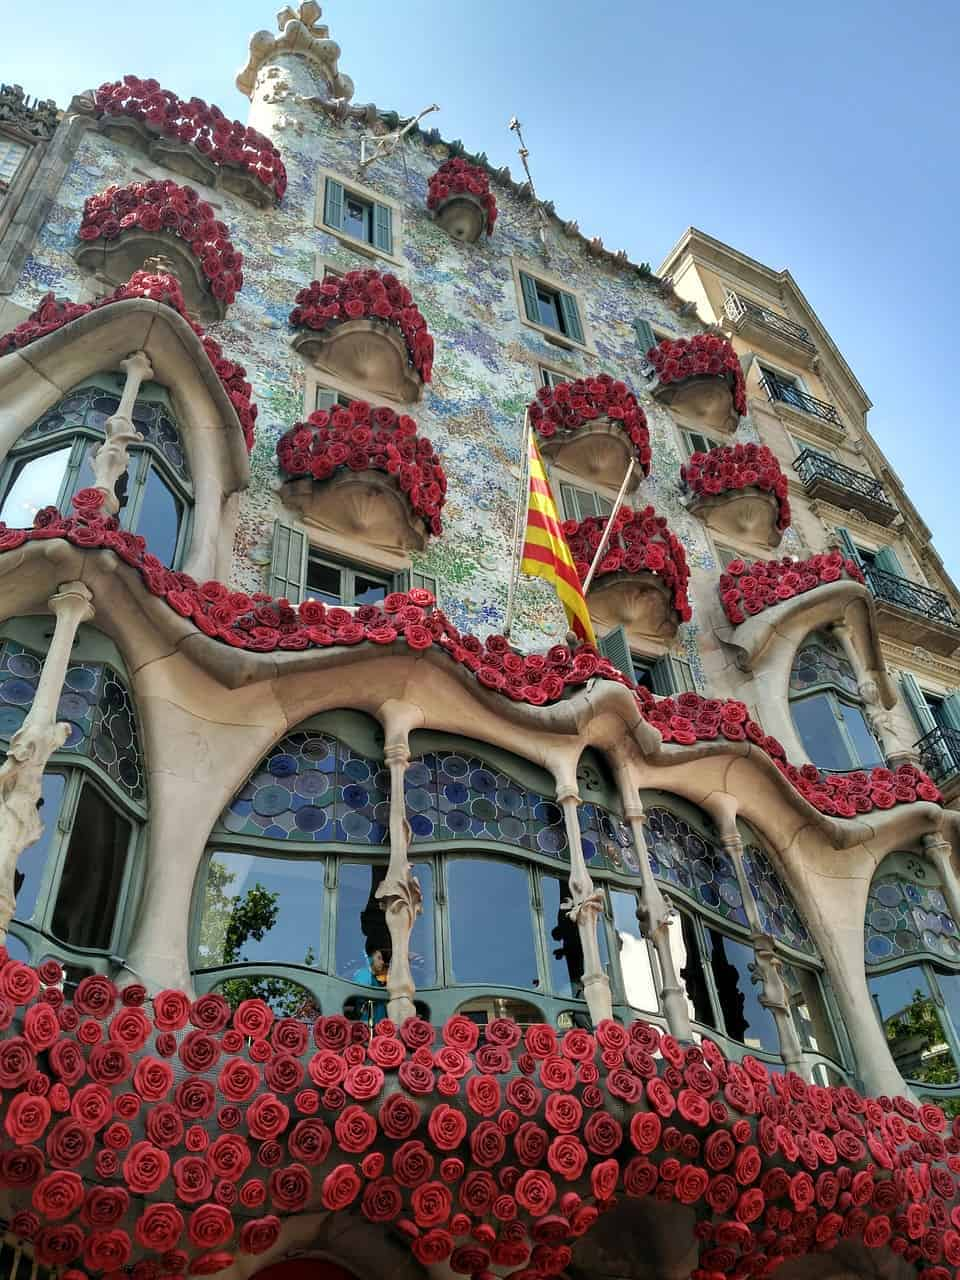 Most iconic buildings in Barcelona, Casa Batllo by Antoni Gaudi